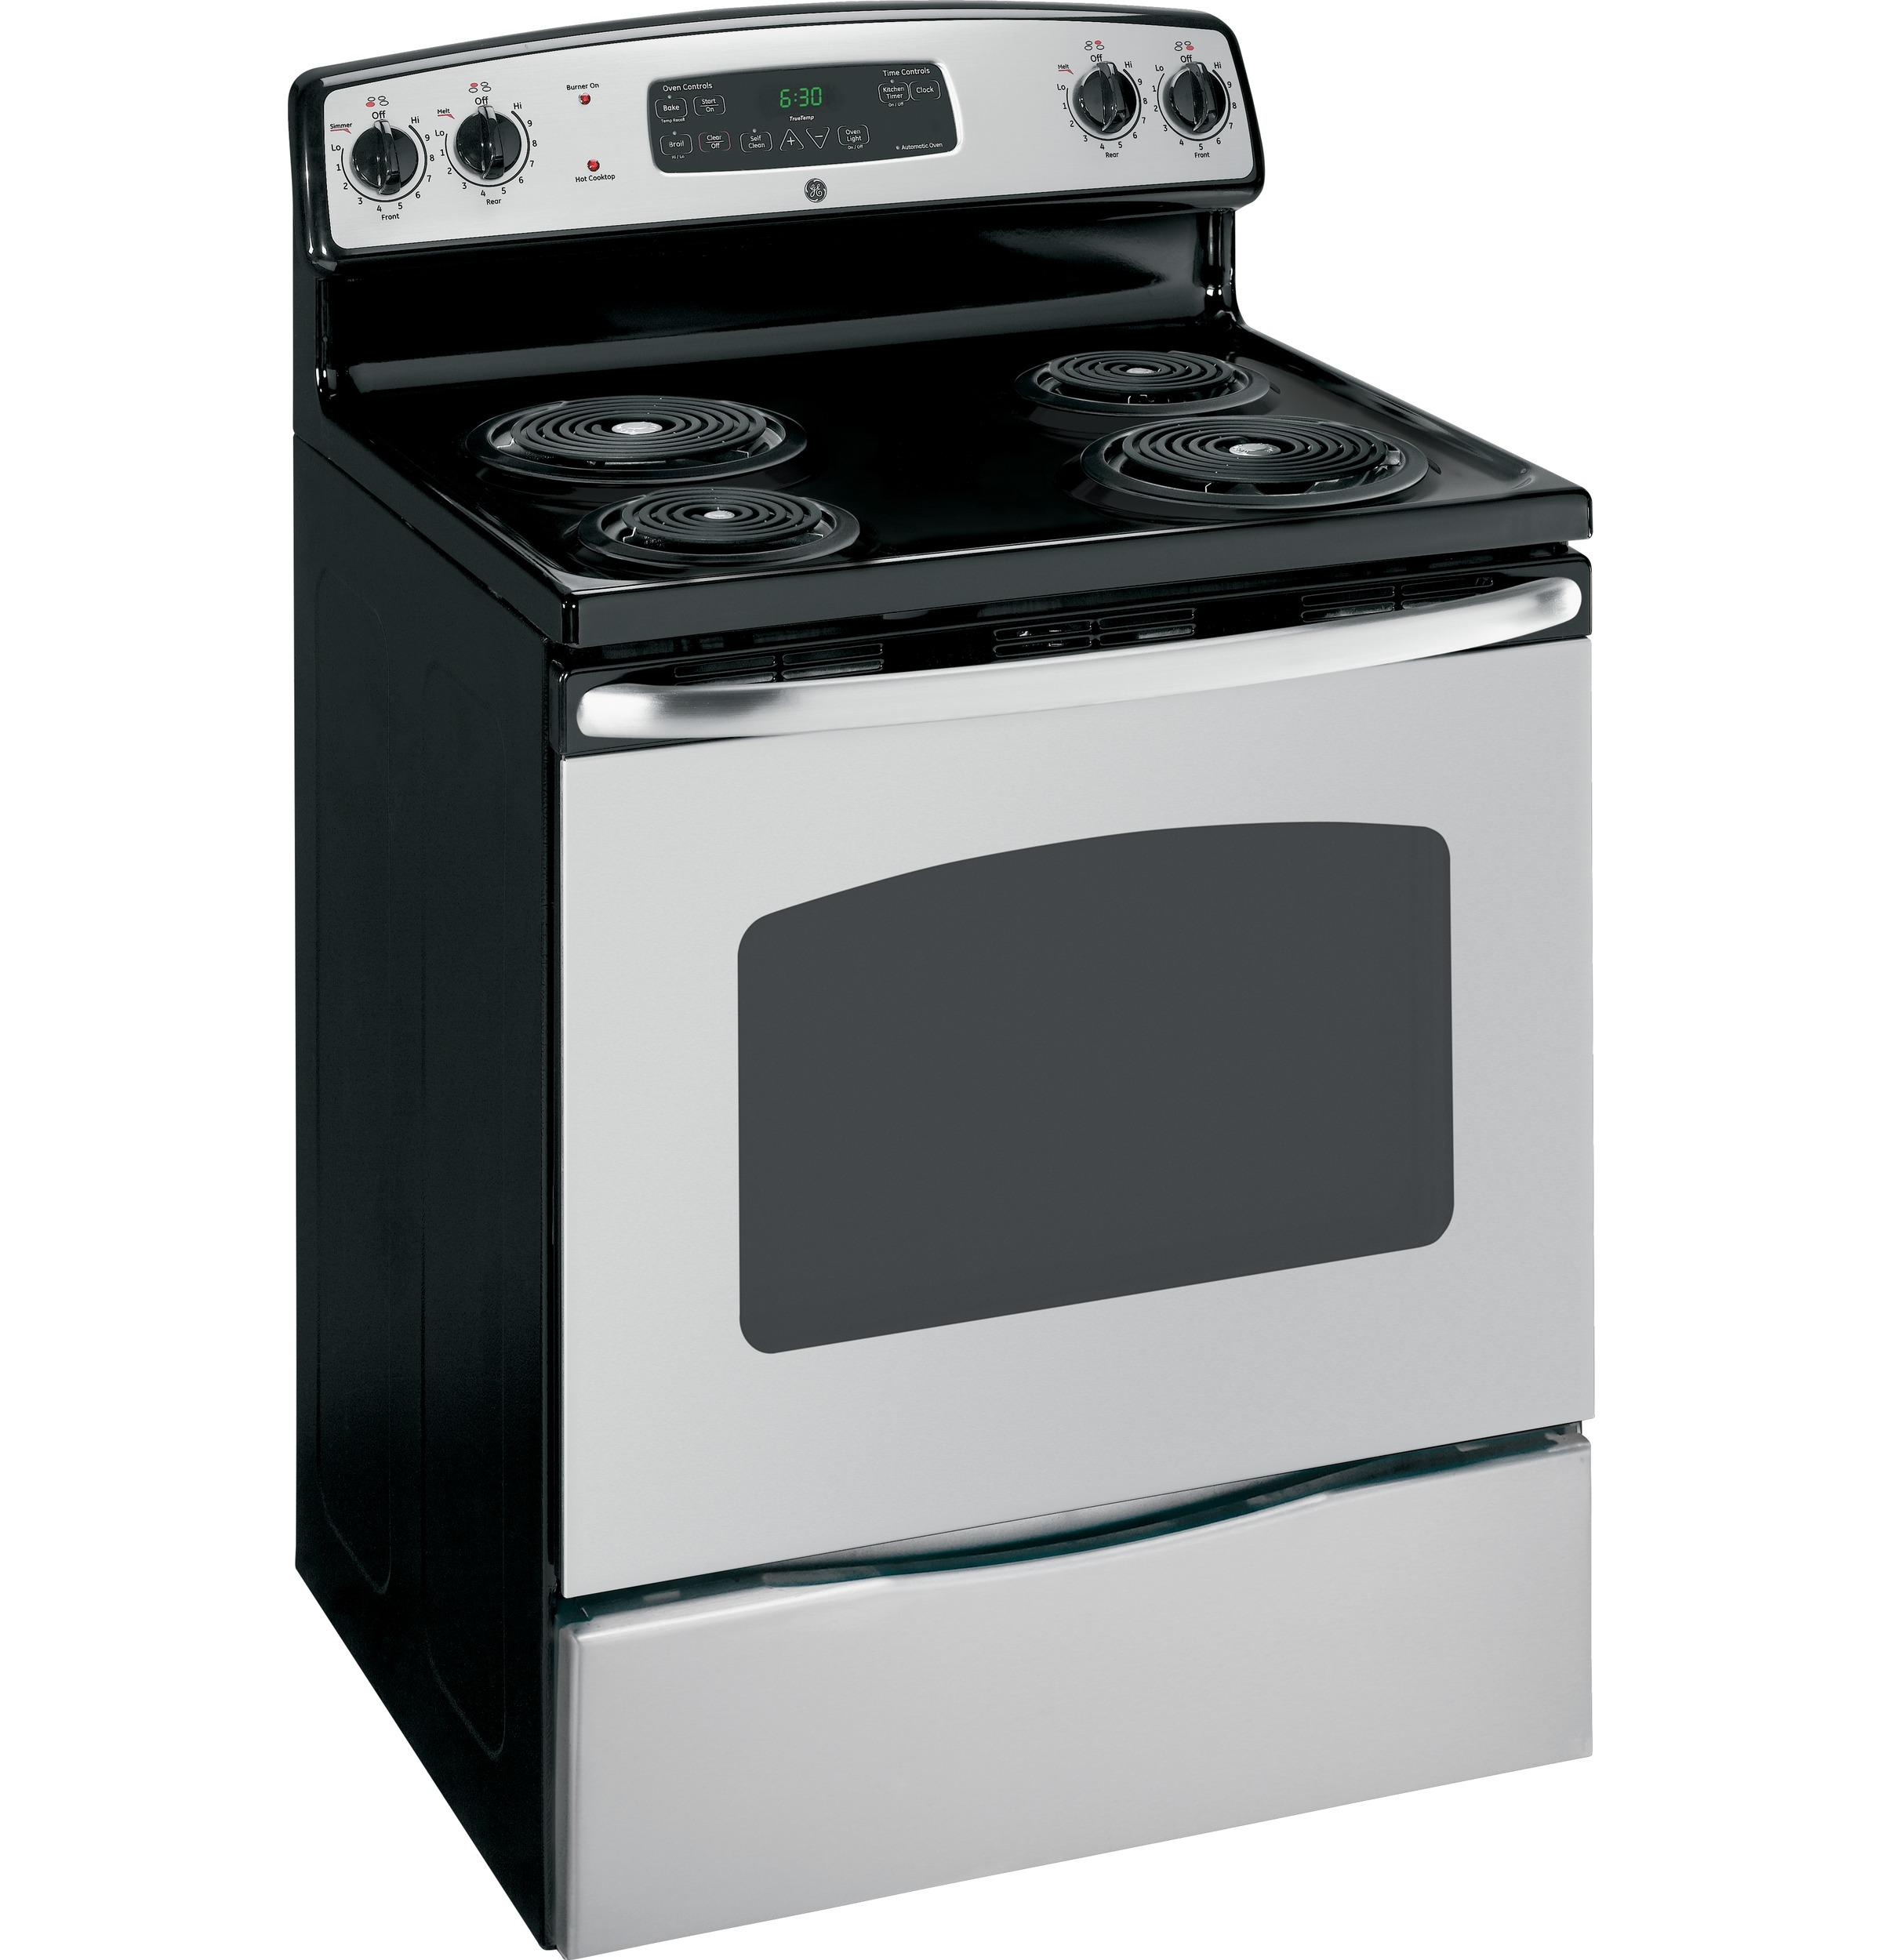 General Electric Stoves ~ Jbp drww general electric ranges white